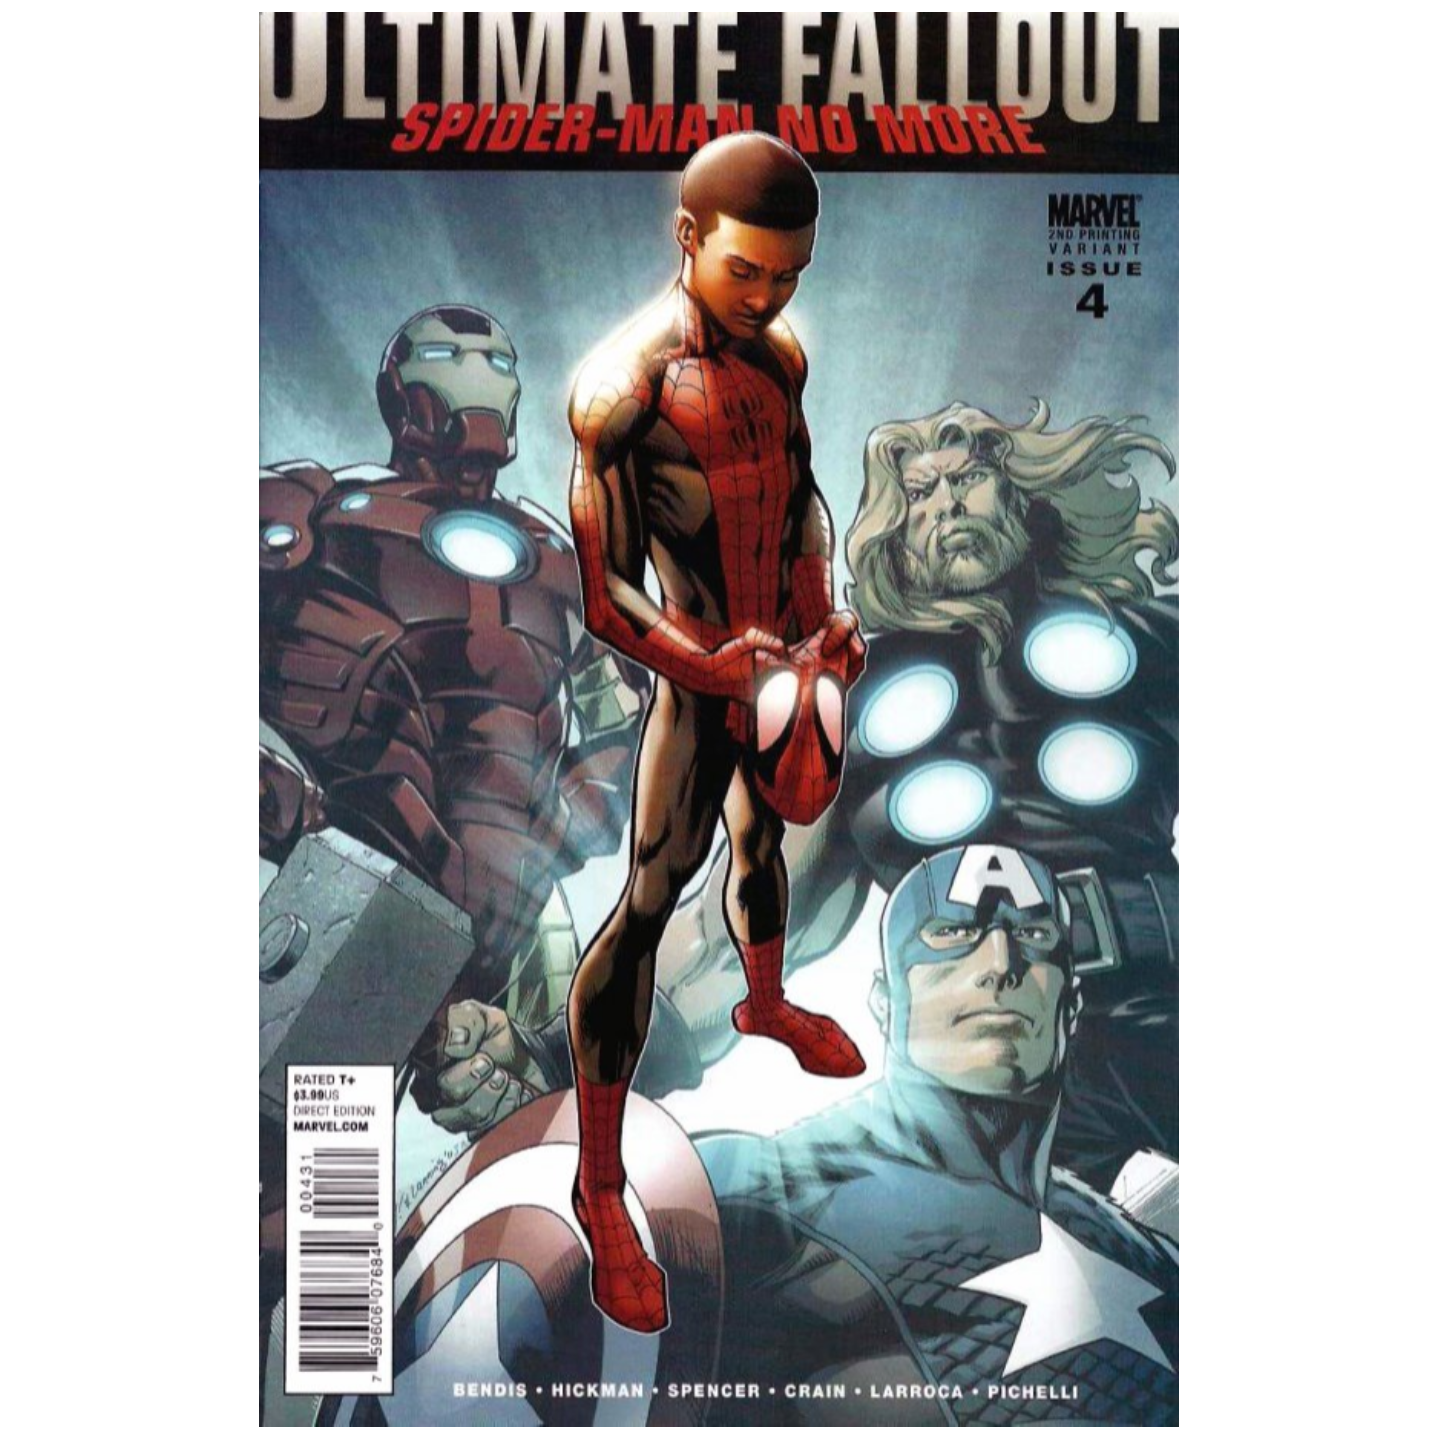 ULTIMATE FALLOUT #4 2ND PRINTING BAGLEY VARIANT